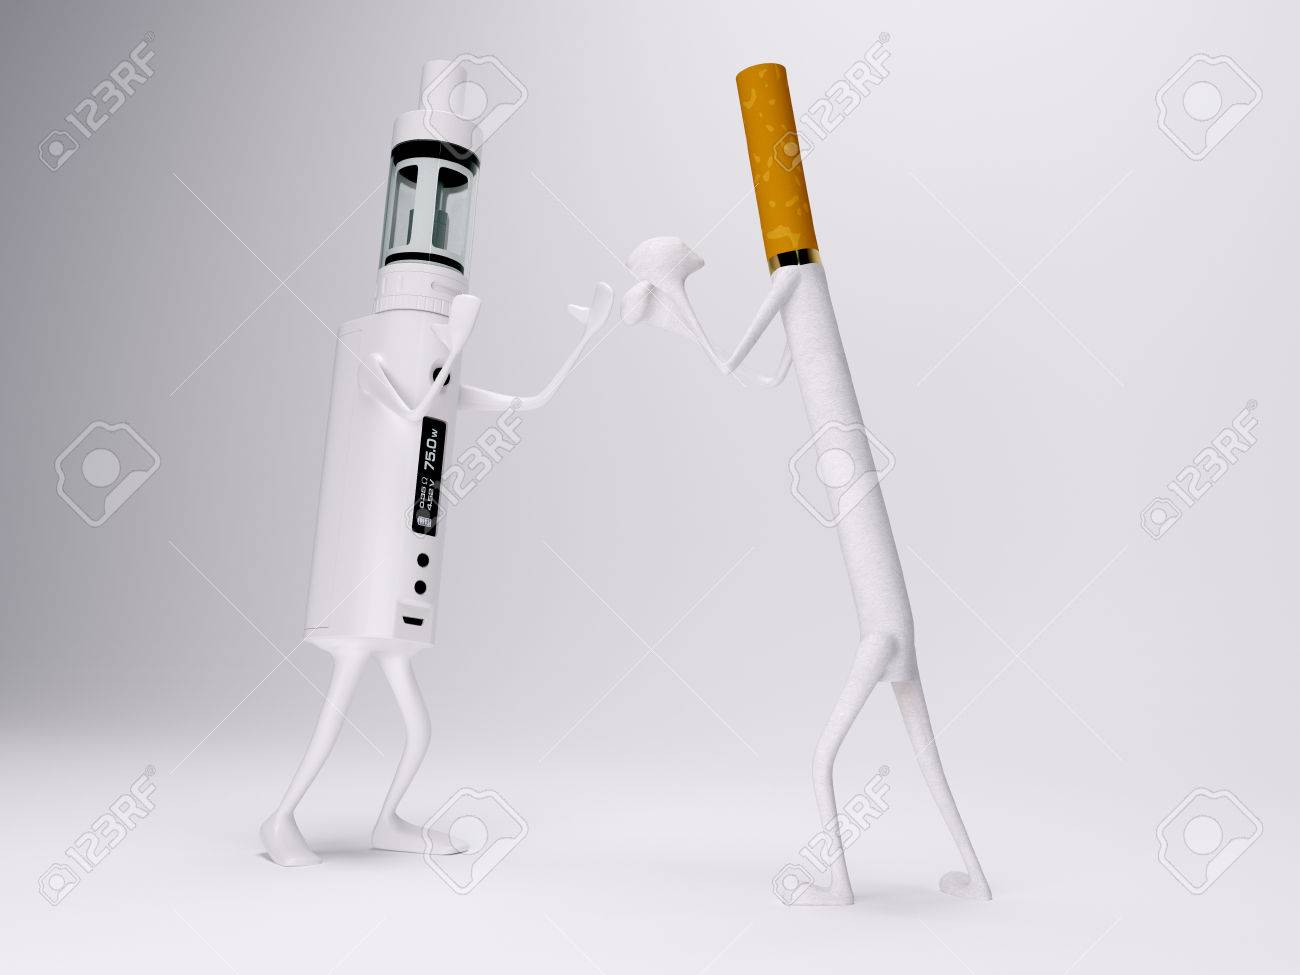 Vaping battery mod fighting with cigarette 3d realistic render Standard-Bild - 54692215